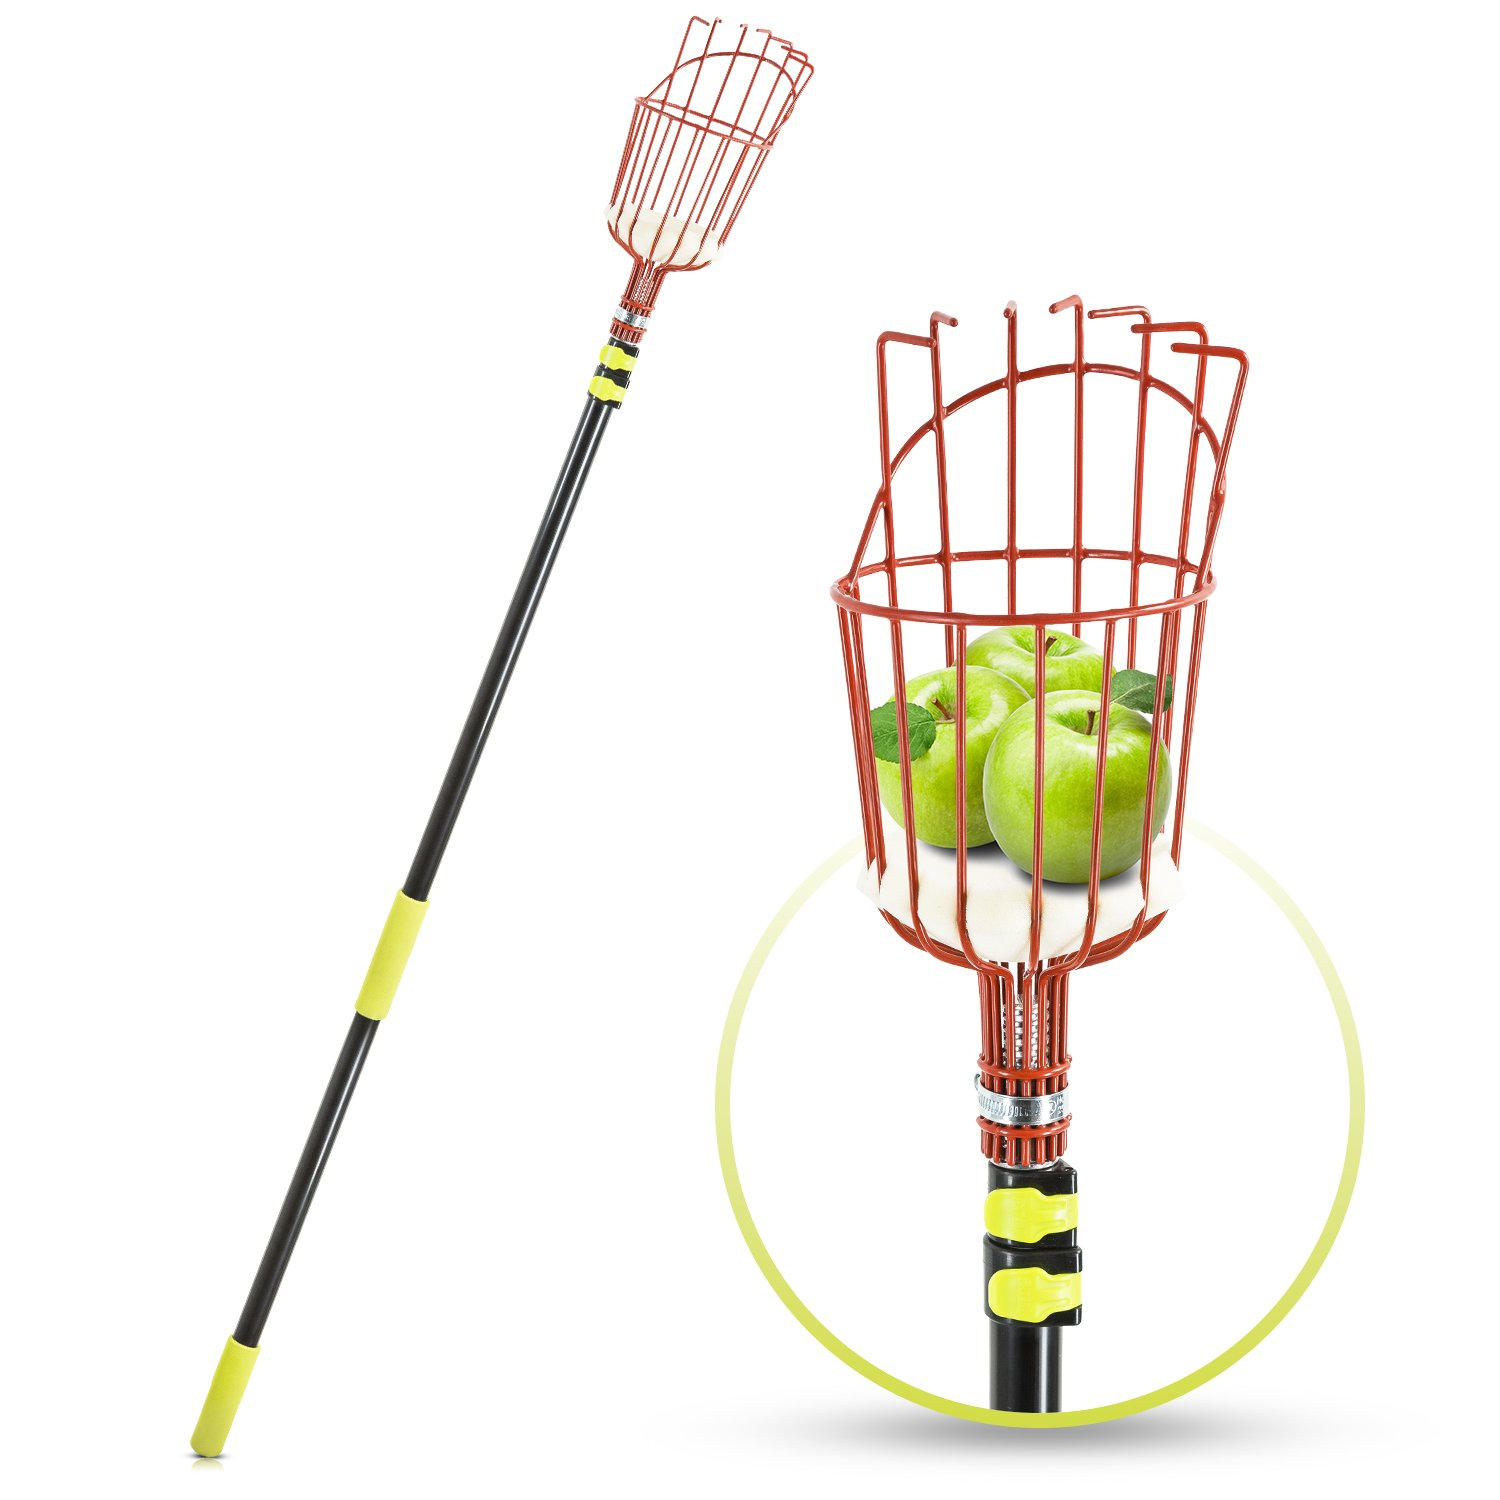 Abco Tech Fruit Picker Tool or Fruit Tree Picking Pole with Basket–13ft Long Aluminum Tree Picker with Telescoping Pole–Extra Lightweight–Ideal for Picking Oranges,Apples or any Kinds of Fruits by Abco Tech